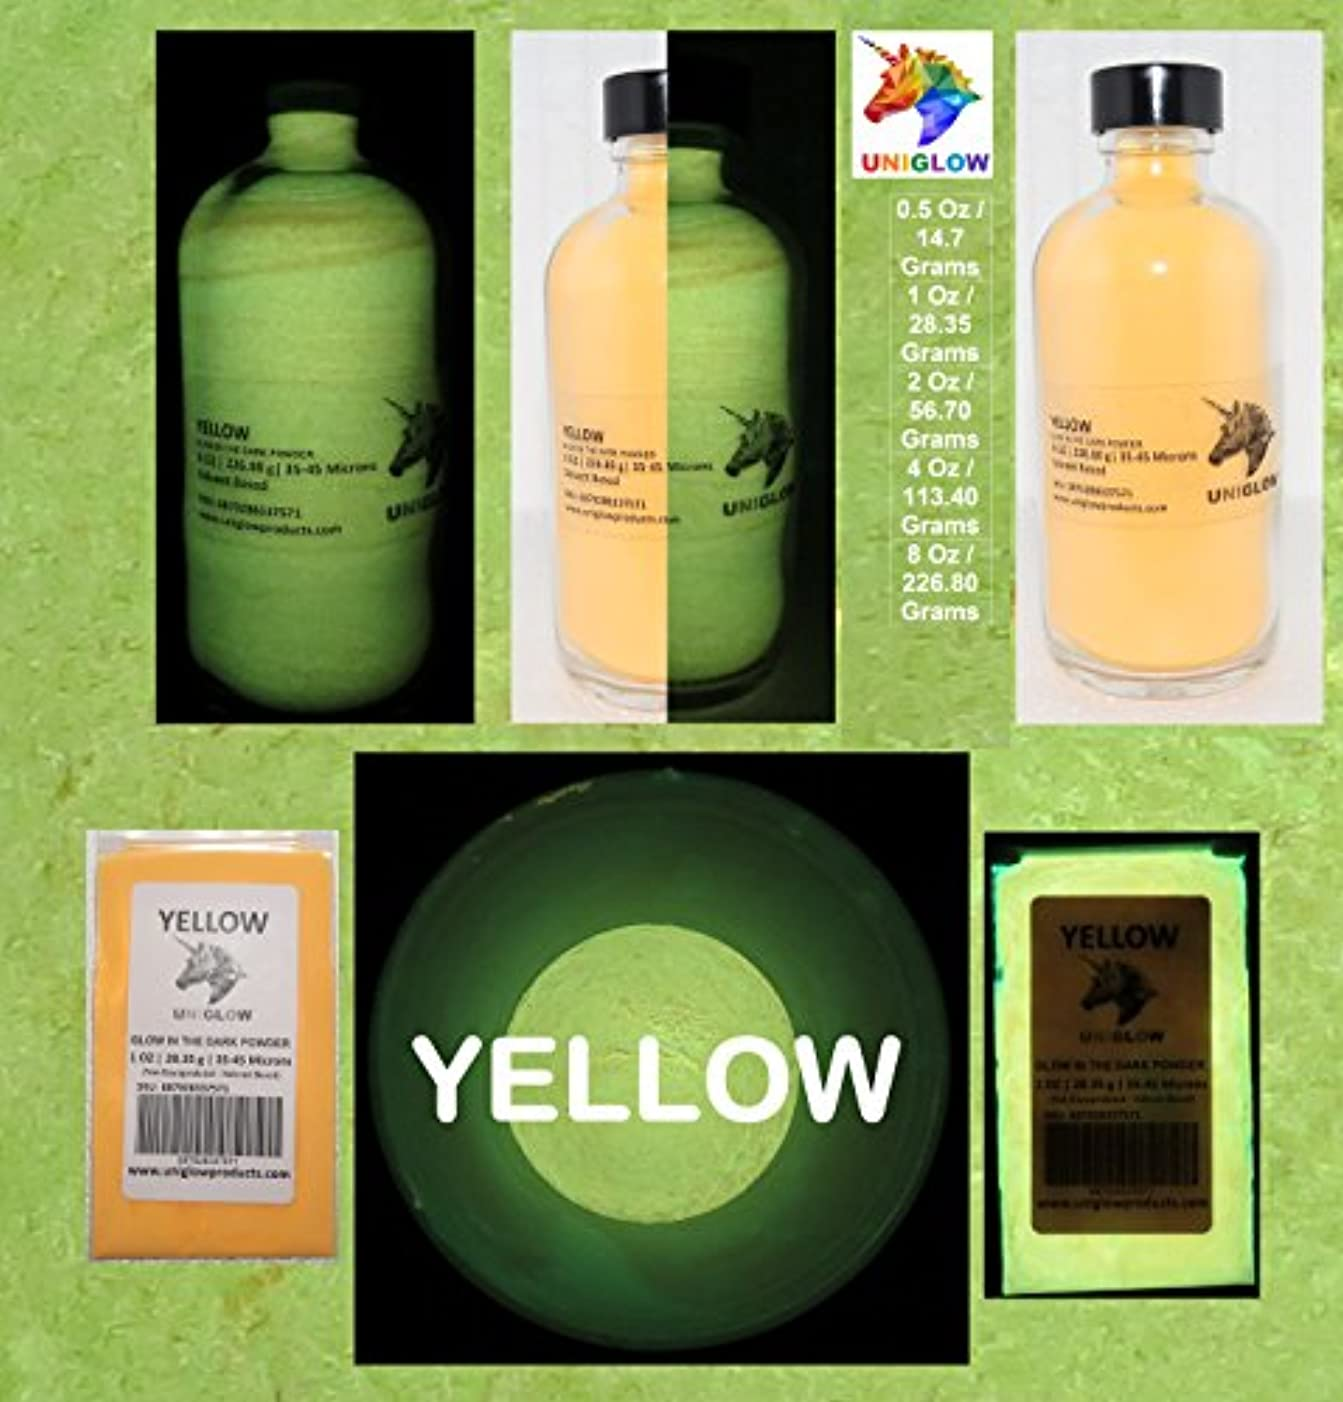 PREMIUM Yellow Glow in the Dark Pigment Powder (2 Oz / 56.70 Grams, Yellow) LONGEST LASTING GLOW POWDER. RECOMMENDED FOR ALL COLORLESS MEDIUM. INK. PAINT. PLASTIC RESIN. GLASS.etc